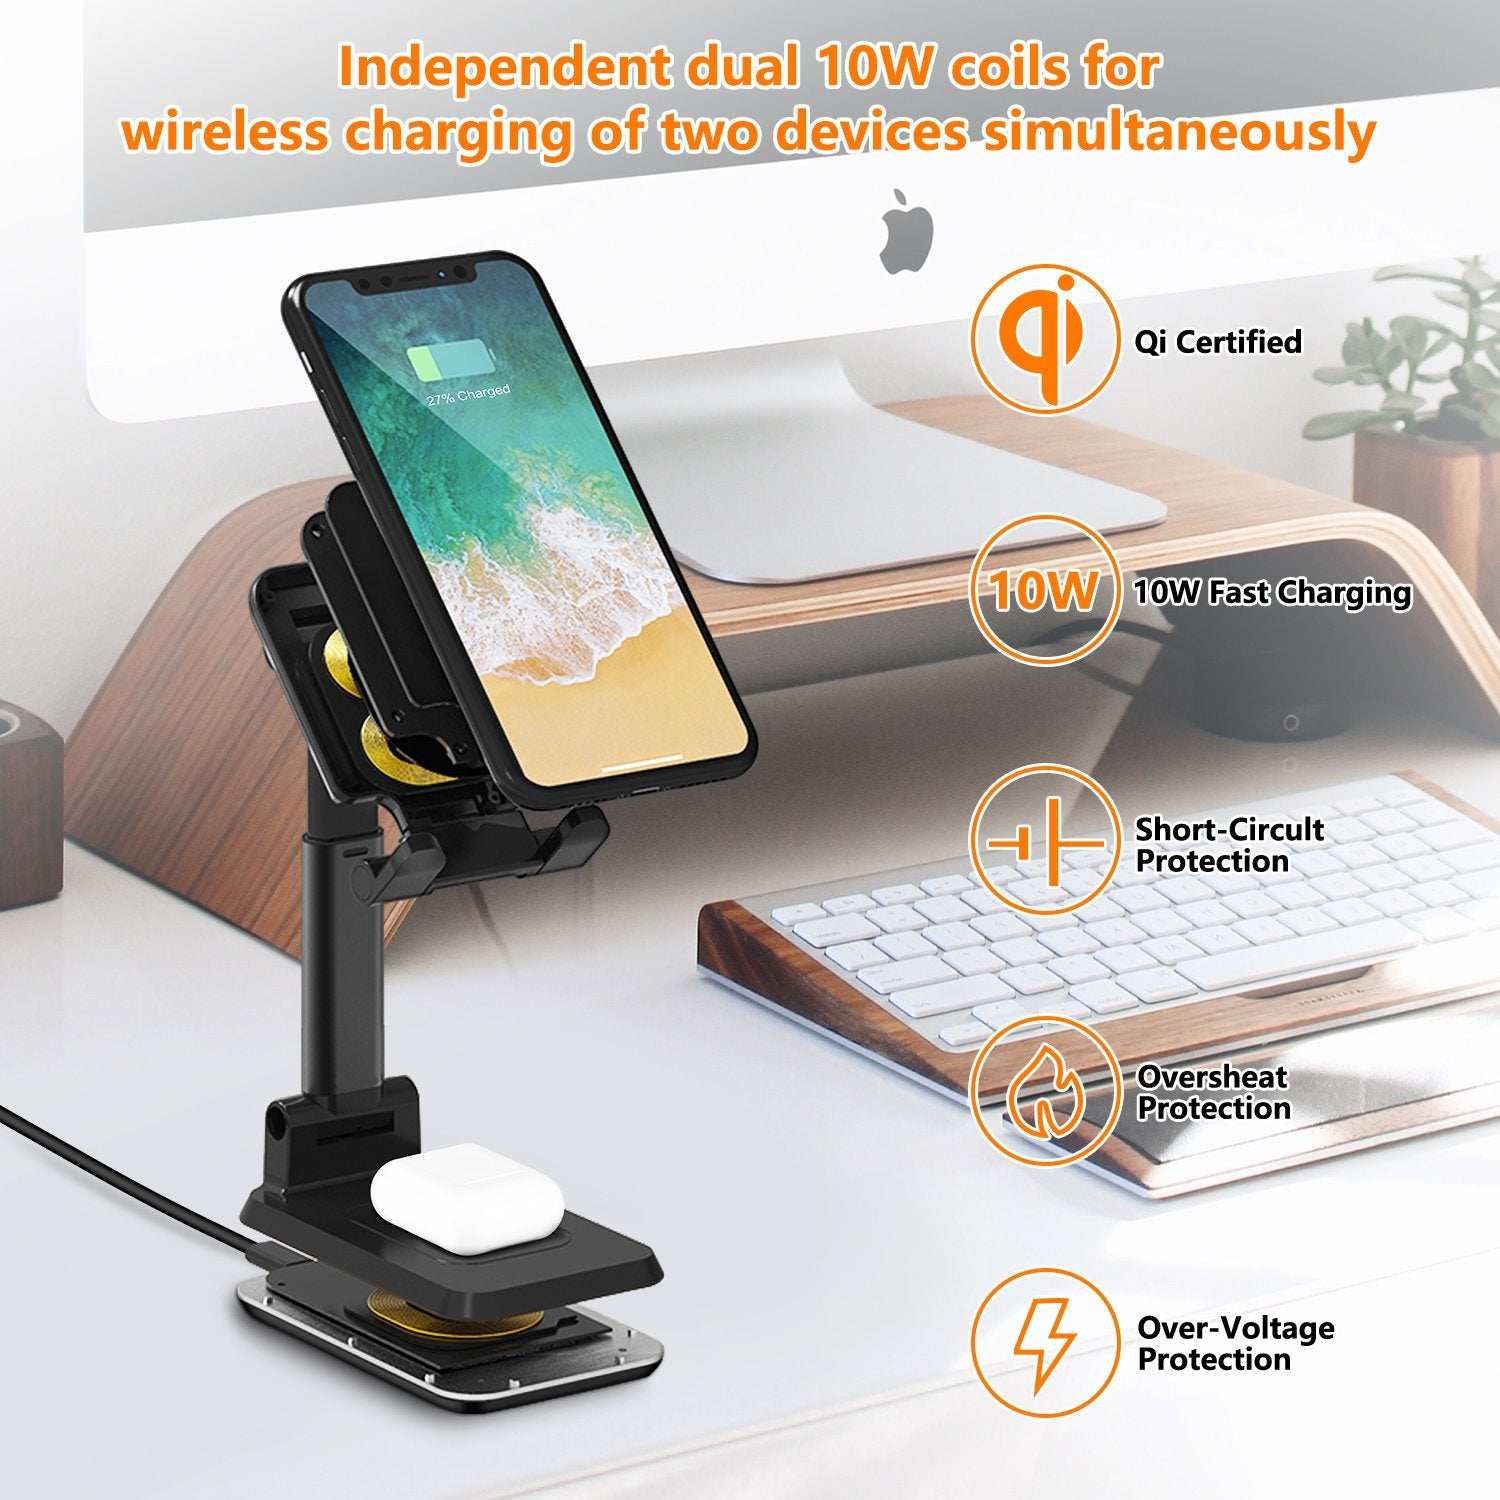 Cell Phone Stand Wireless Charger for Desk-WALOTAR Dual 10W Qi Fast Wireless Charging Foldable Angle&Height Adjustable Phone Holder for iPhone 11/Pro/Max/X/XR/XS Max/8/AirPods/Pro,Galaxy S20/S10/S9/S8